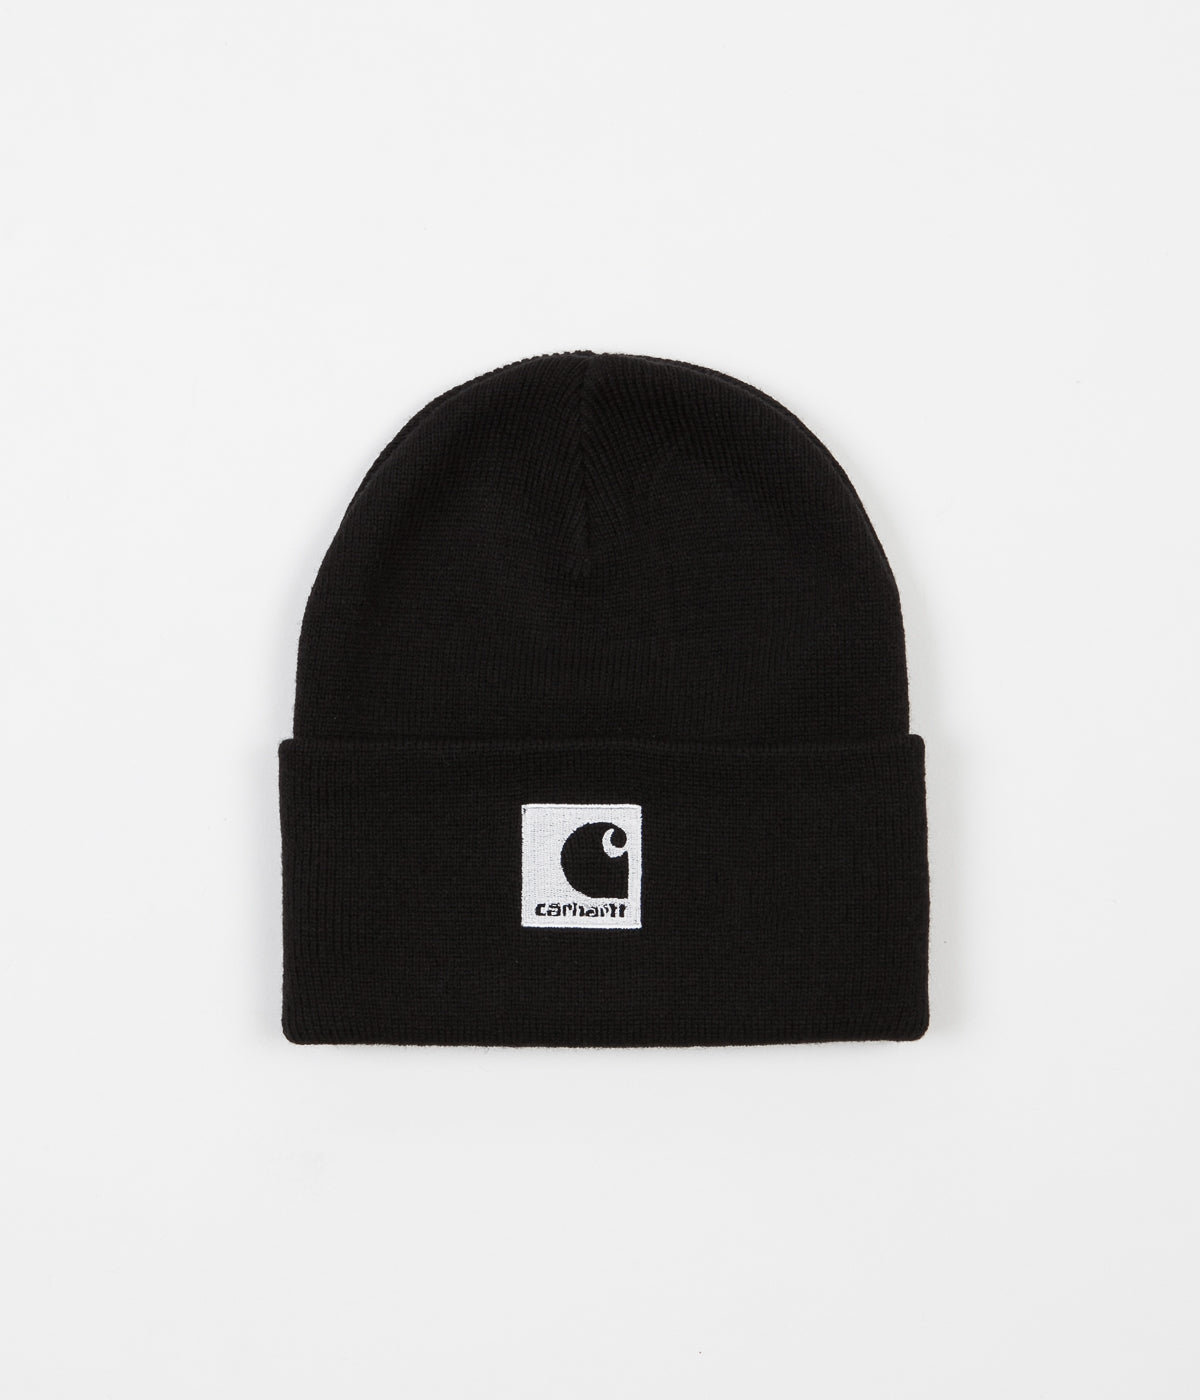 Carhartt Lewiston Beanie  - Black / Wax